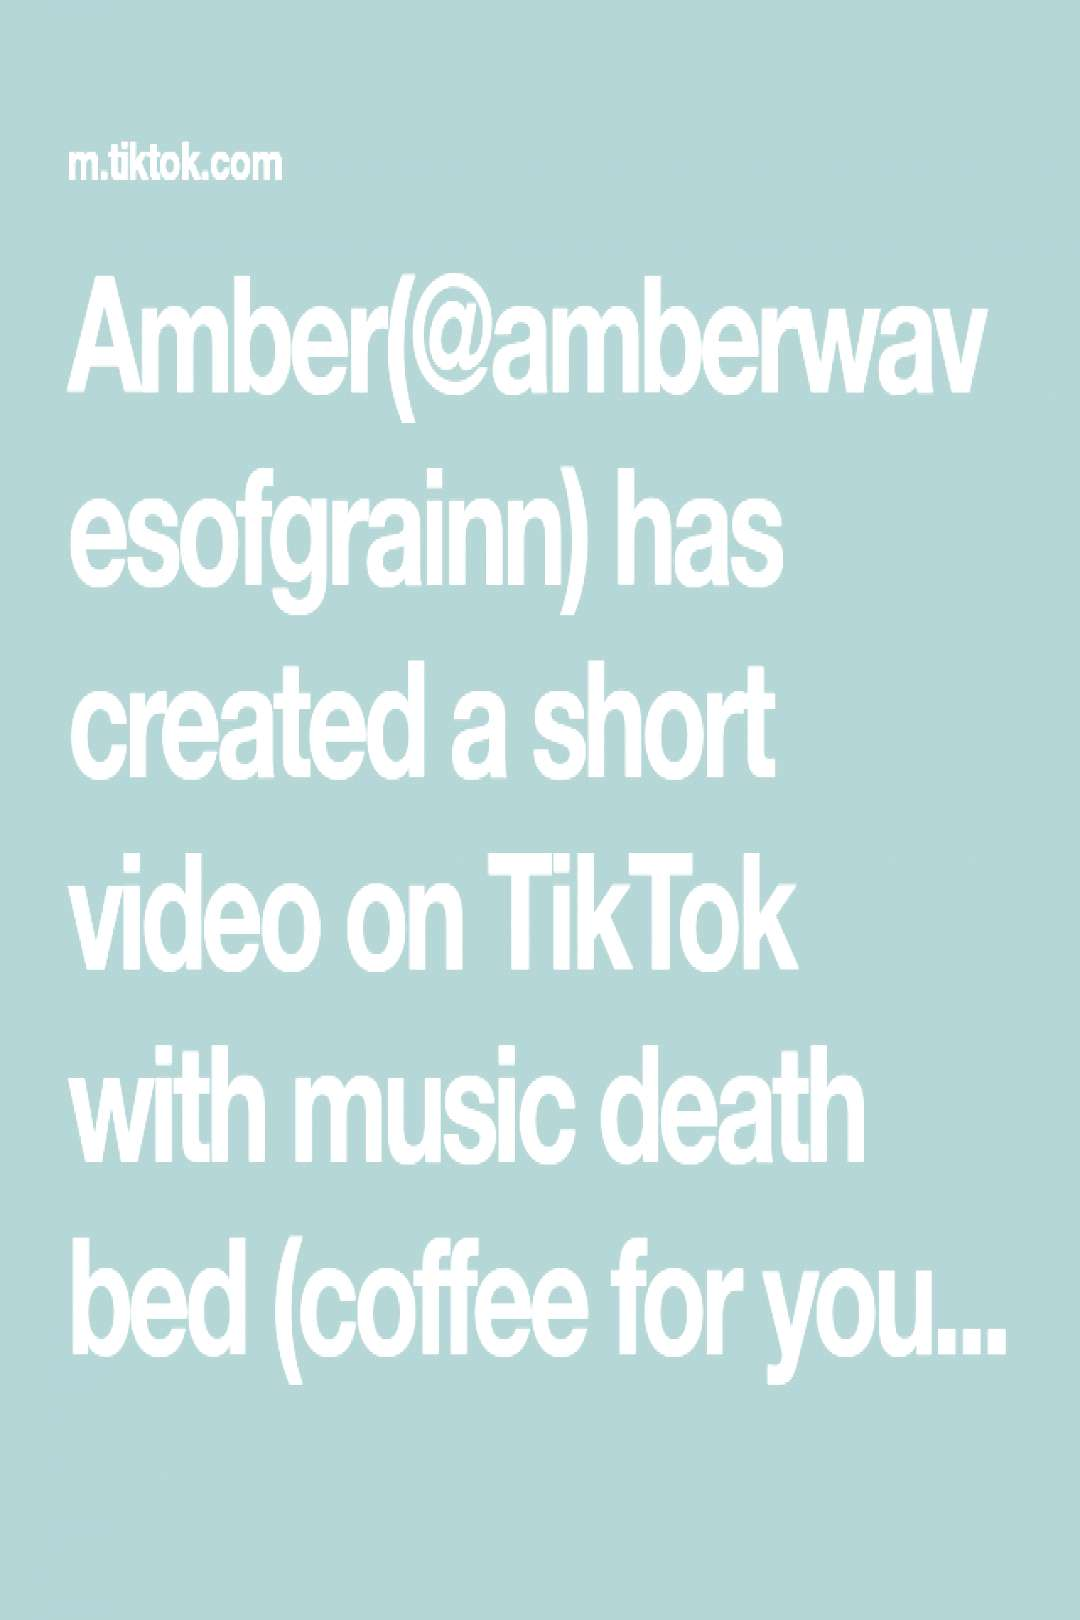 Amber(@amberwavesofgrainn) has created a short video on TikTok with music death bed (coffee for you